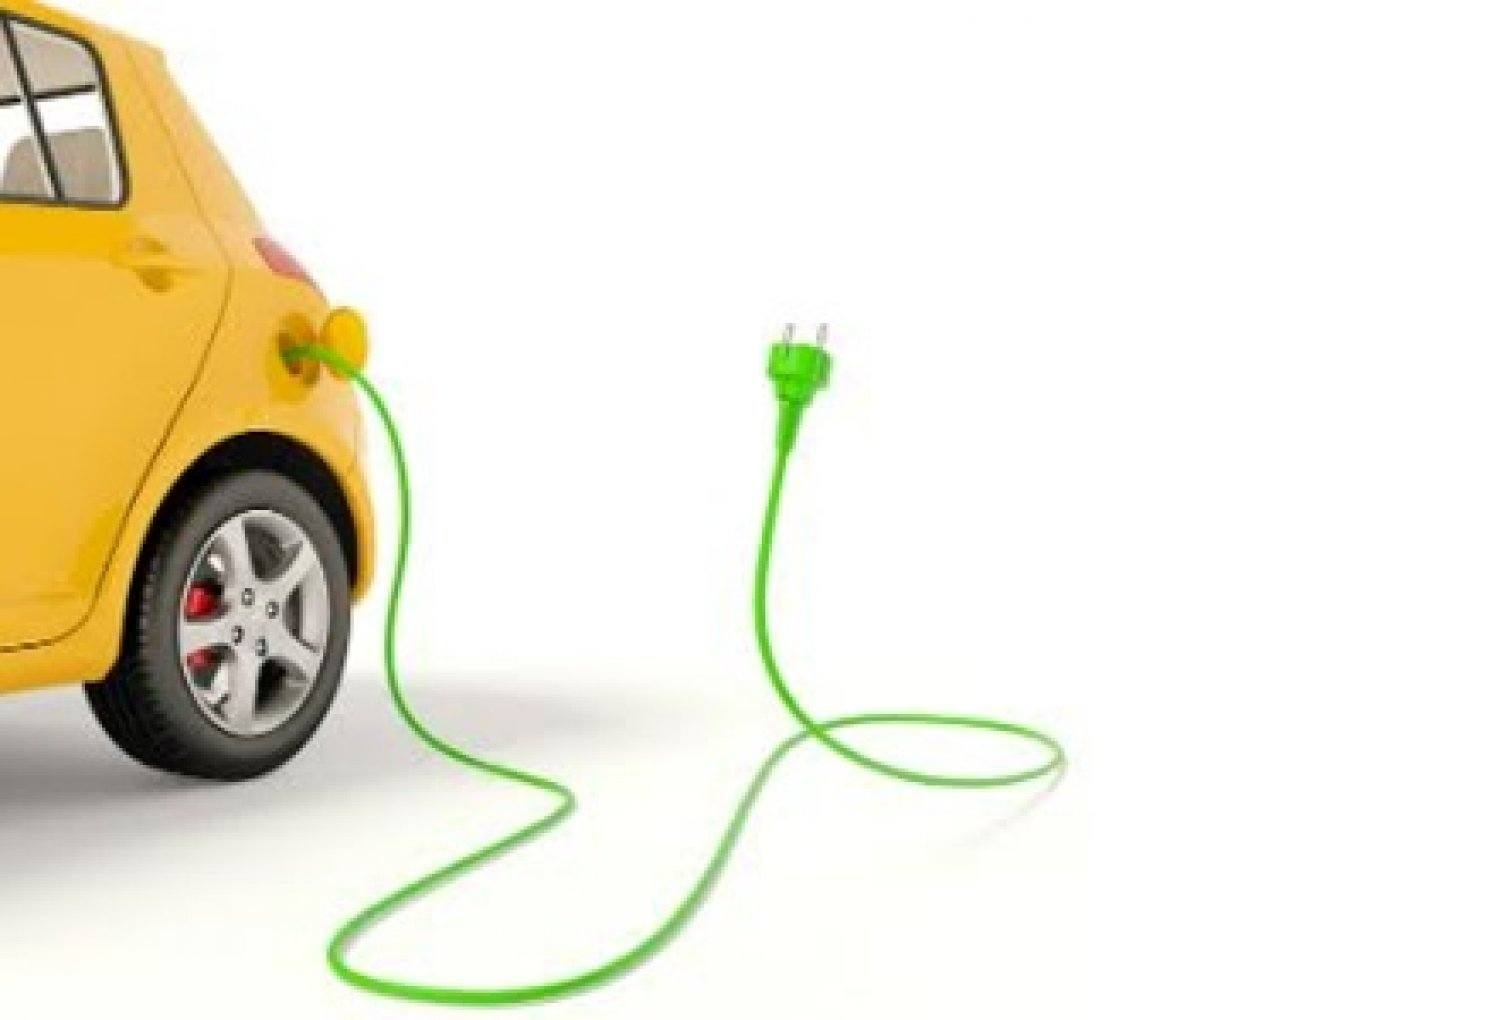 No need to plug it - the Electric Car sells itself